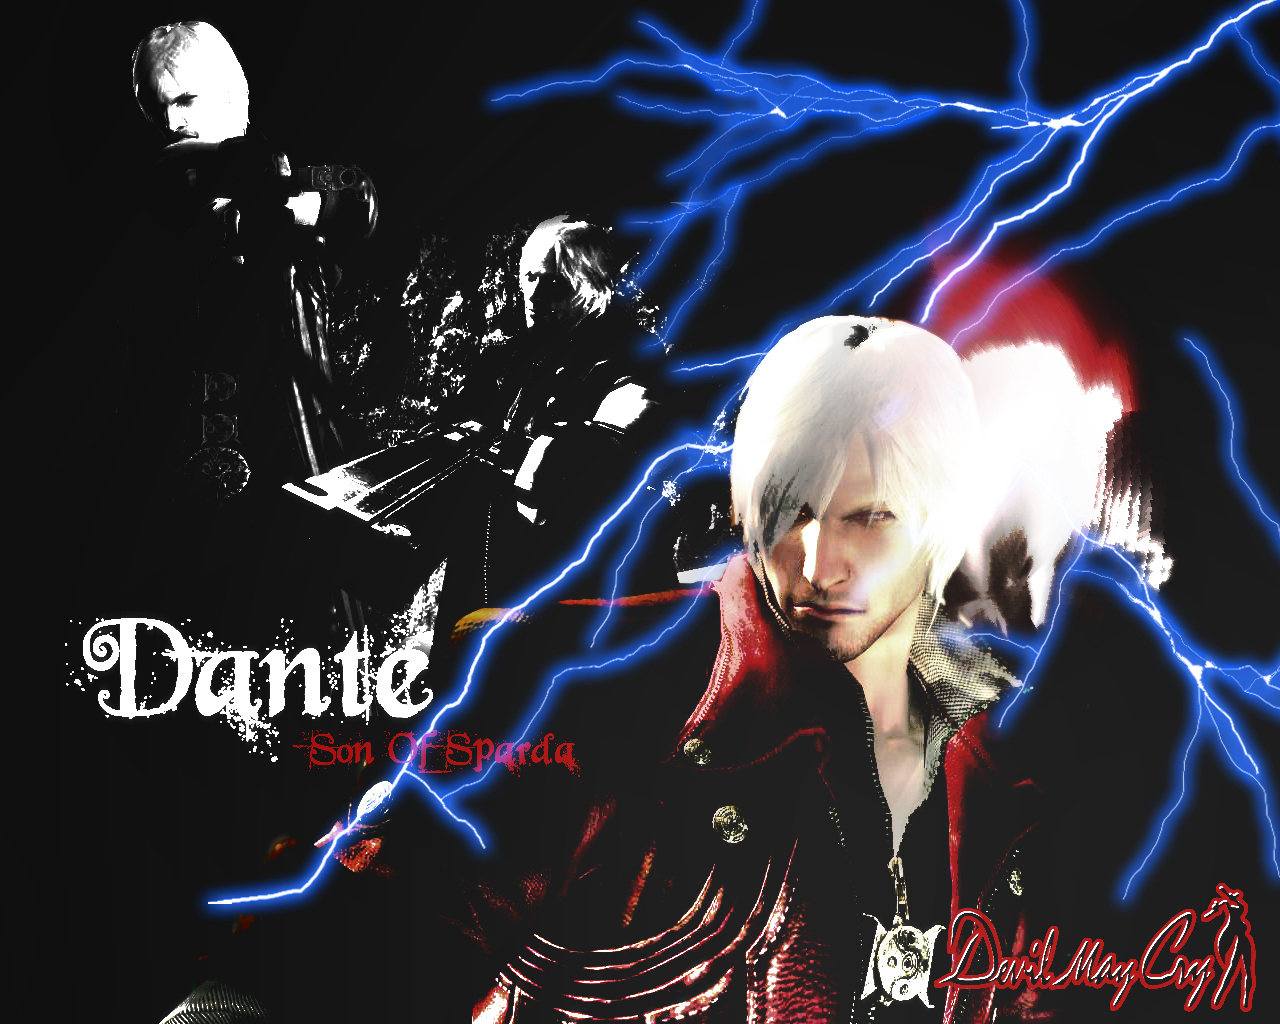 Devil May Cry 4 Gambar Dante Hd Wallpaper And Background Foto 10531028